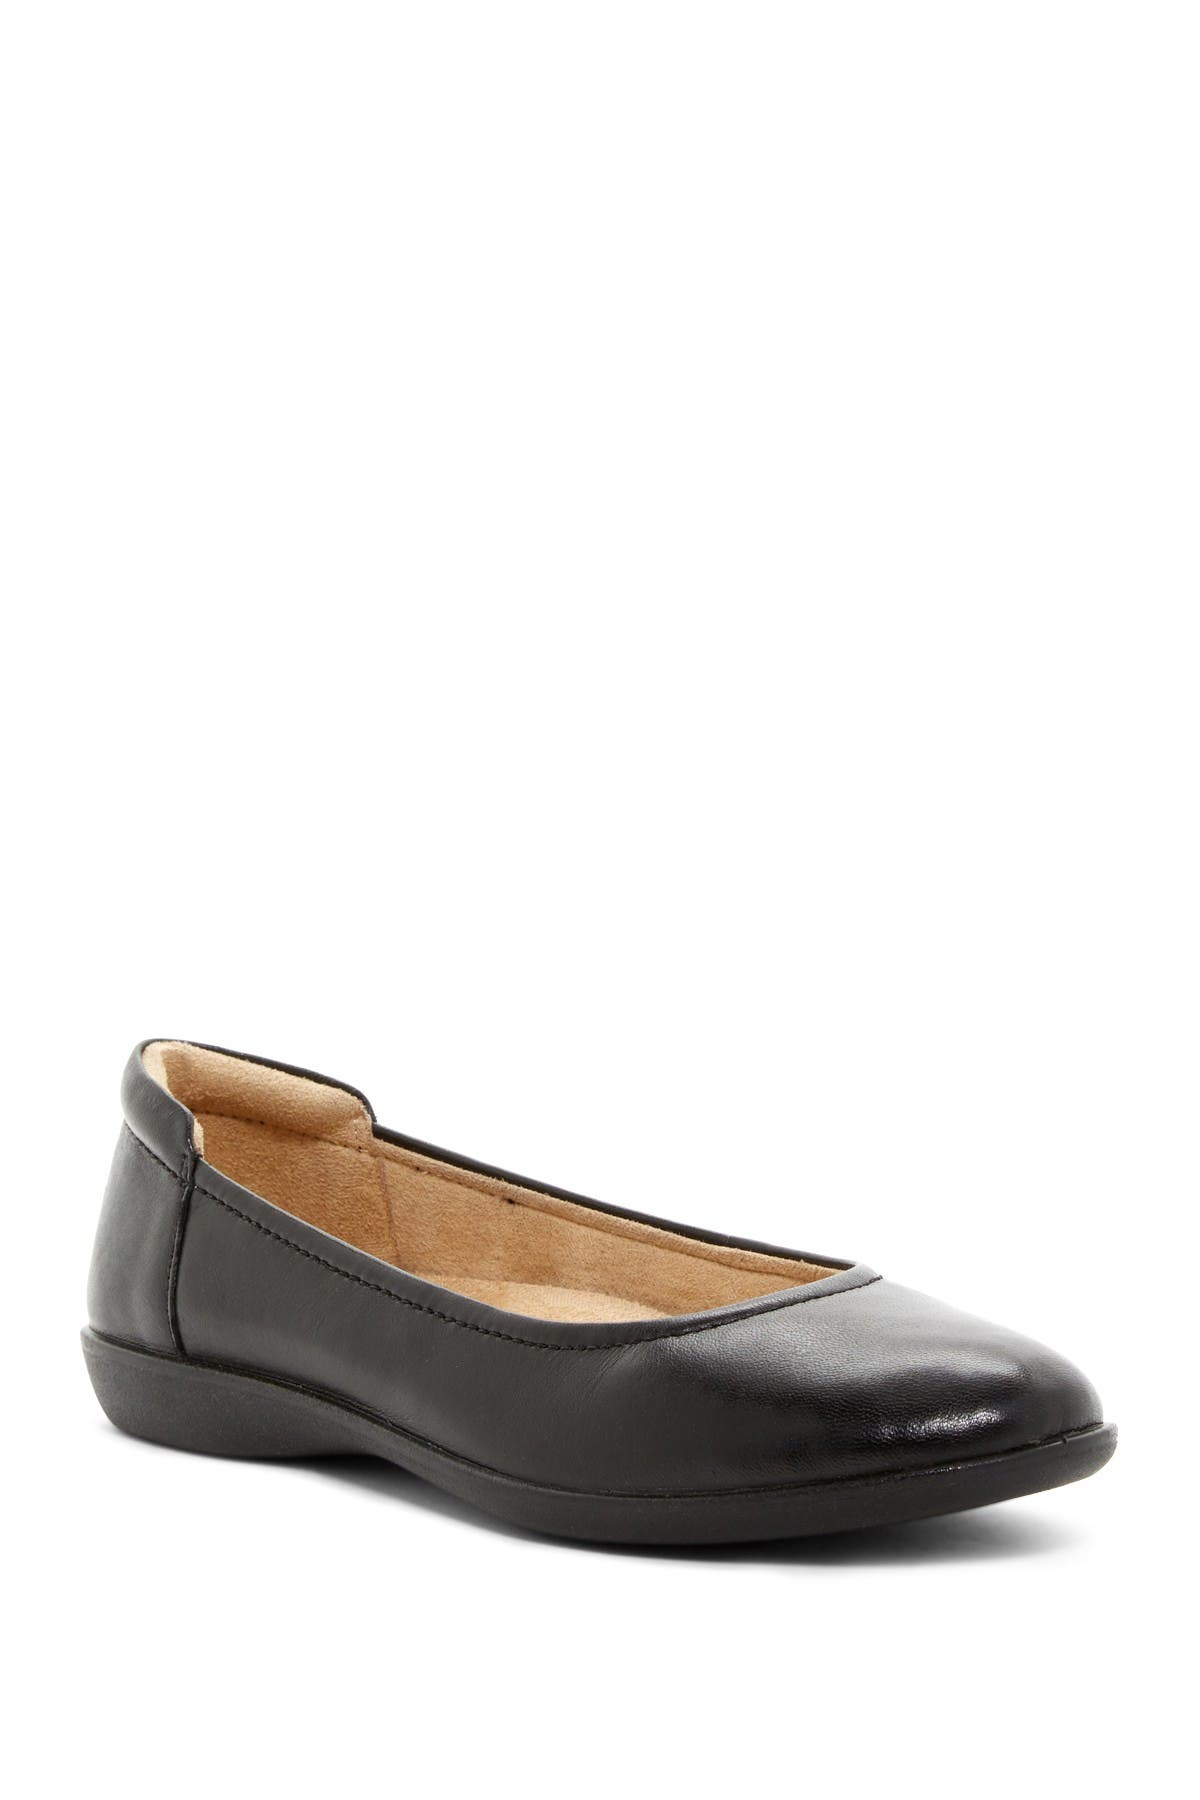 Image of Naturalizer Flexy Leather Flat - Wide Width Available